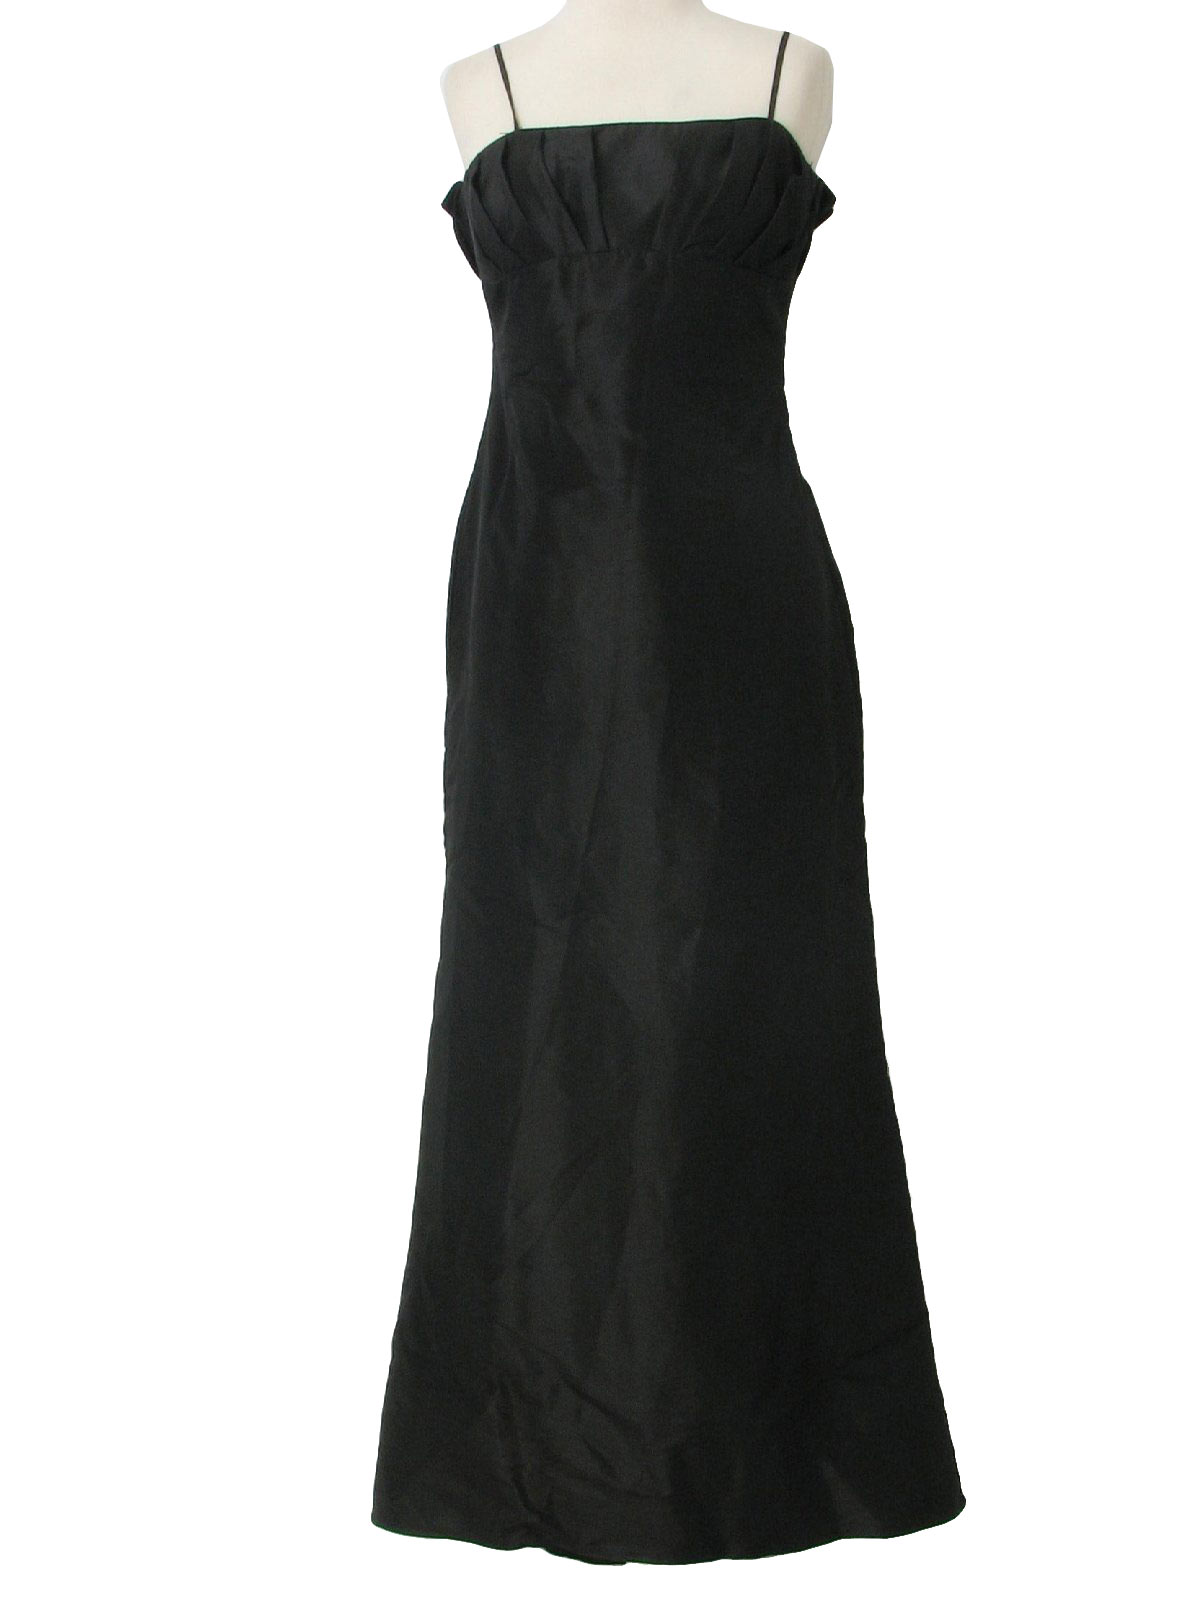 Jim Hjelm 1990s Vintage Cocktail Dress: 90s -Jim Hjelm- Womens ...